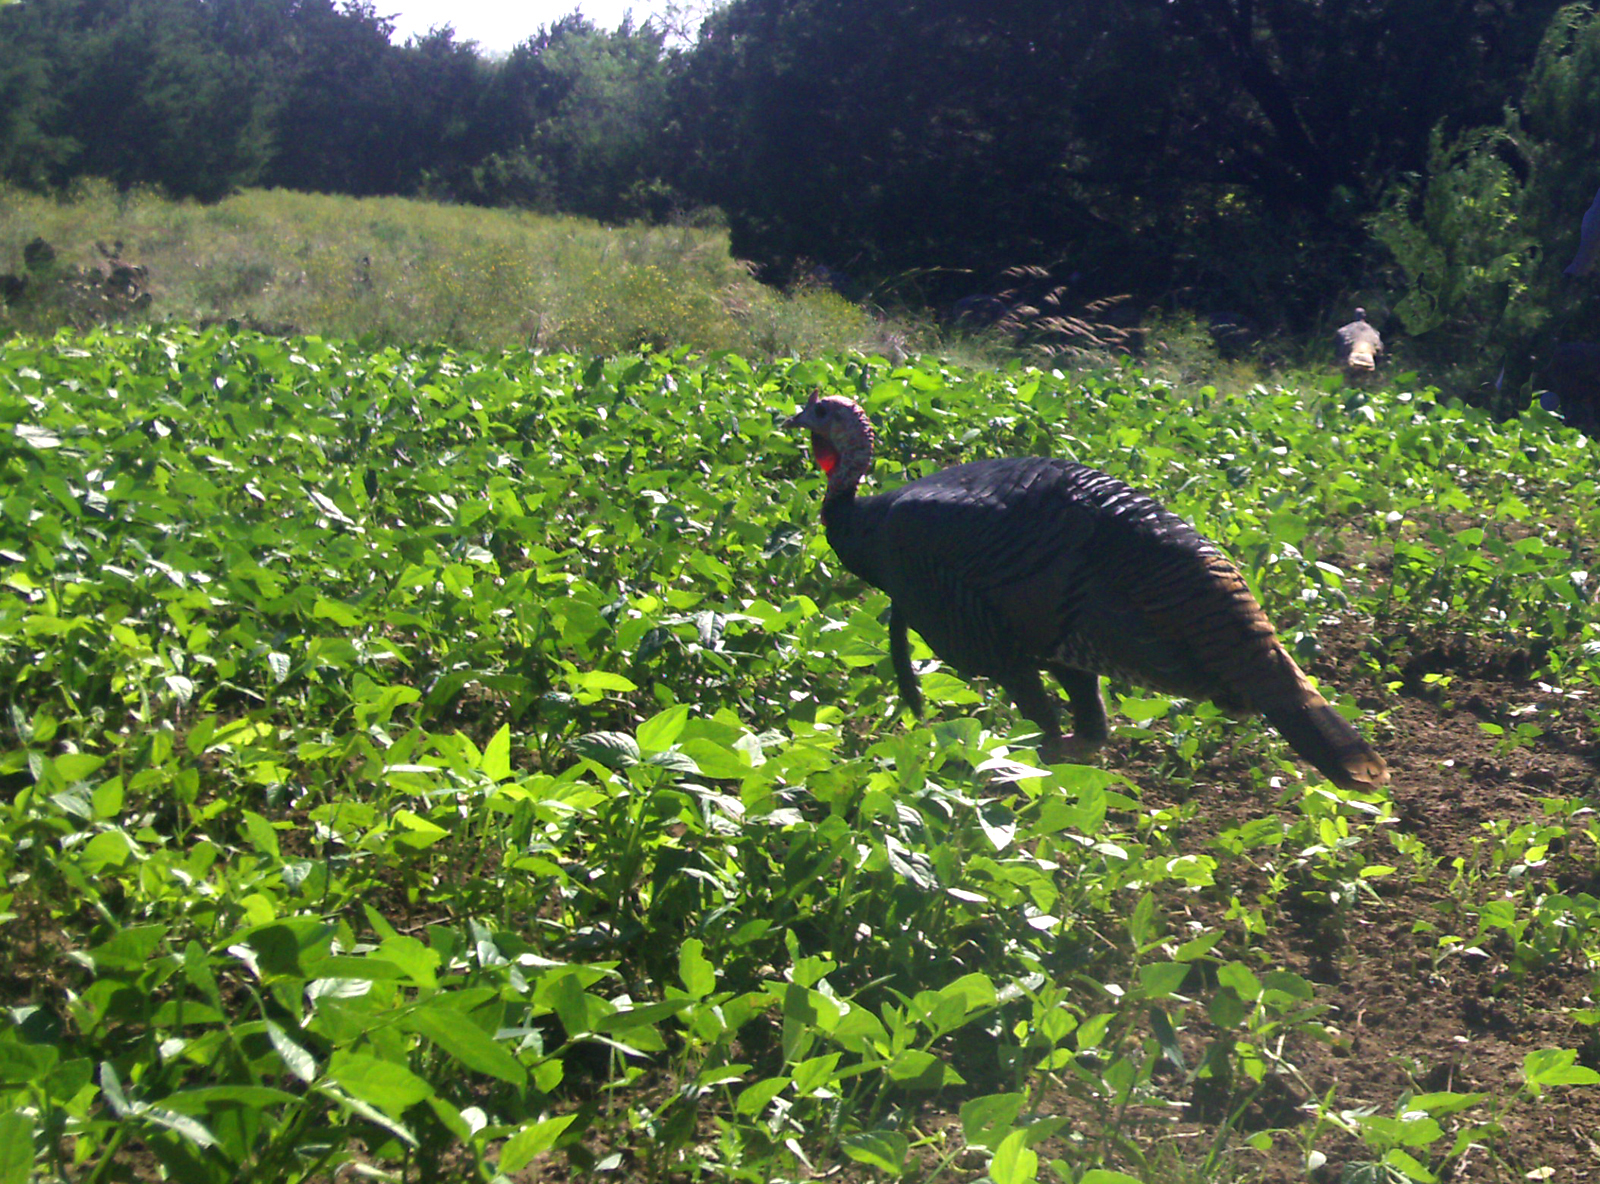 Wild turkey gobbler in food plot.